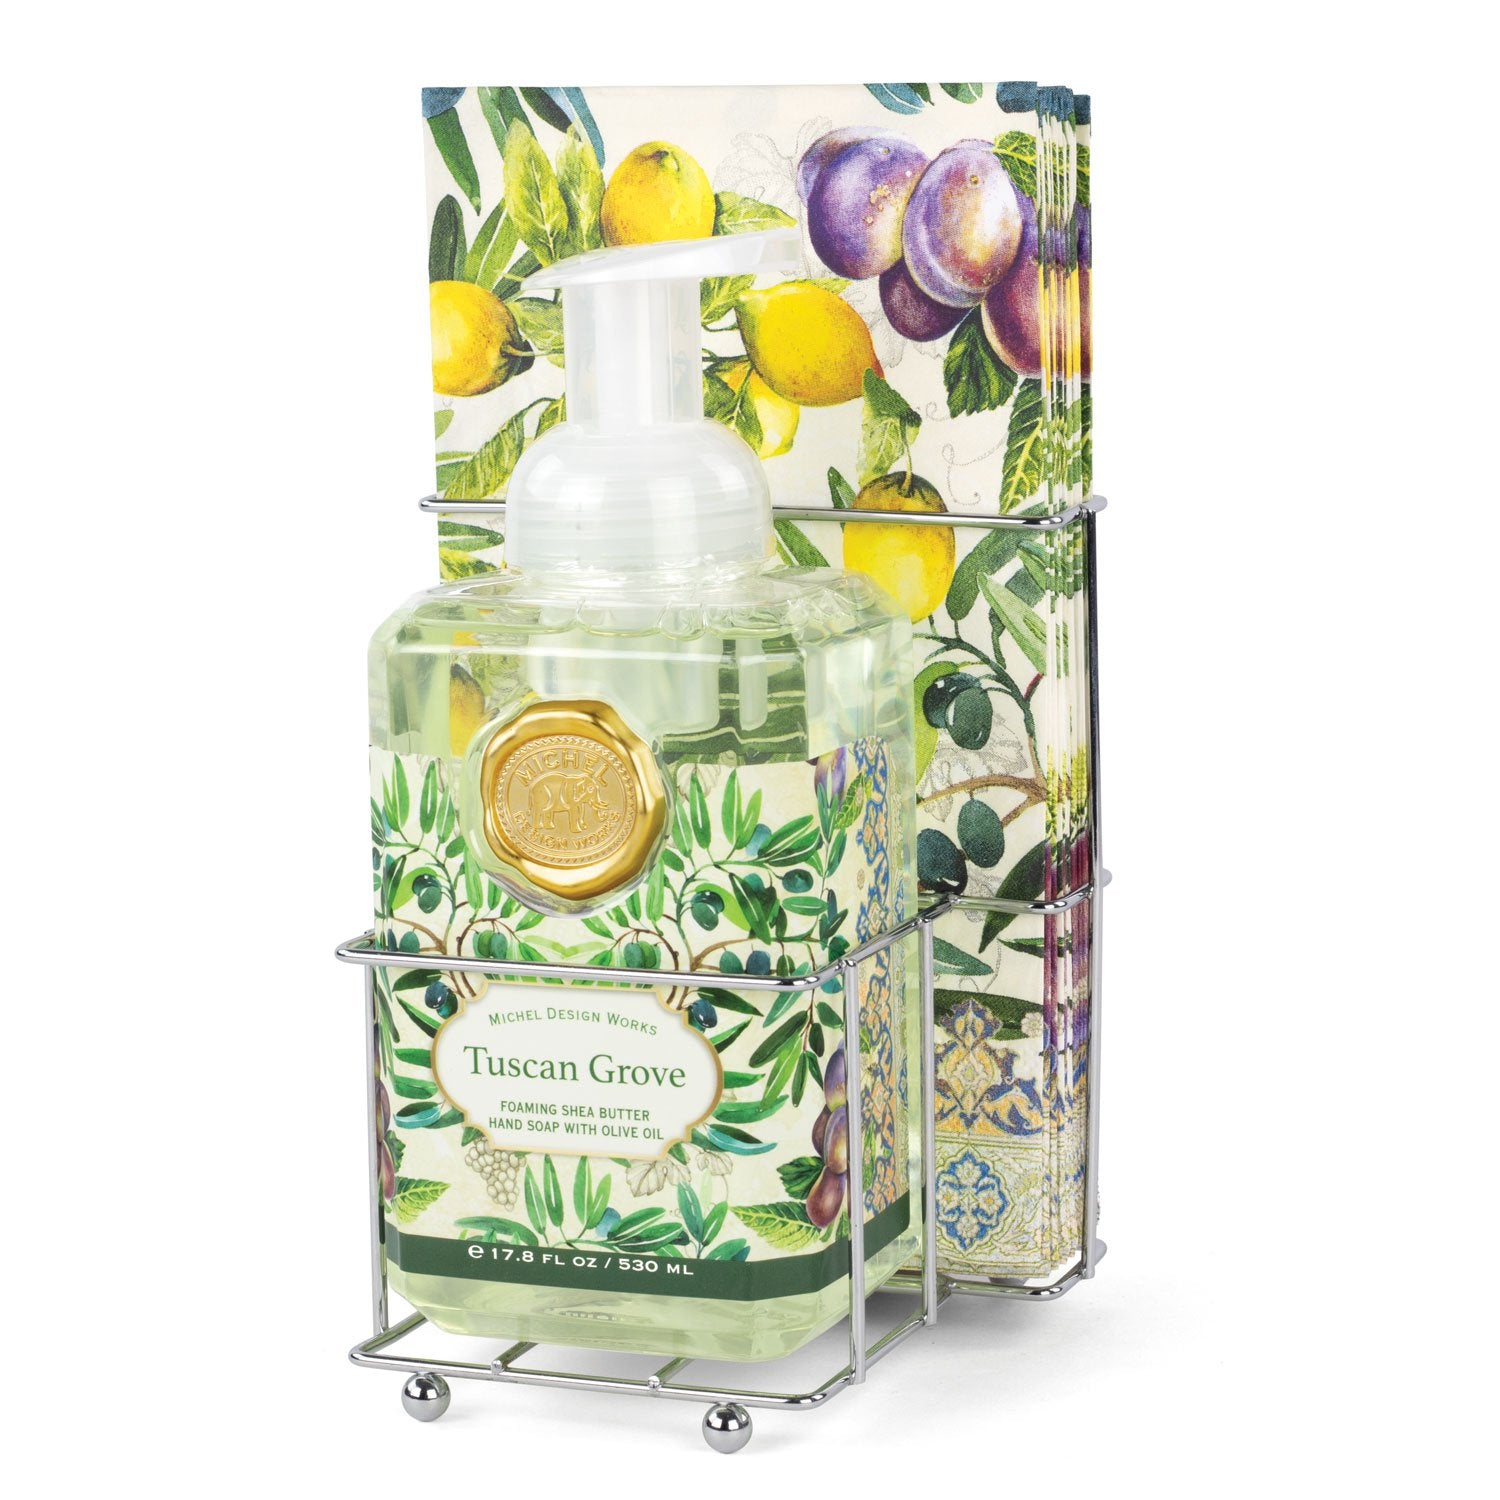 Tuscan Grove Foaming Hand Soap Napkin Set